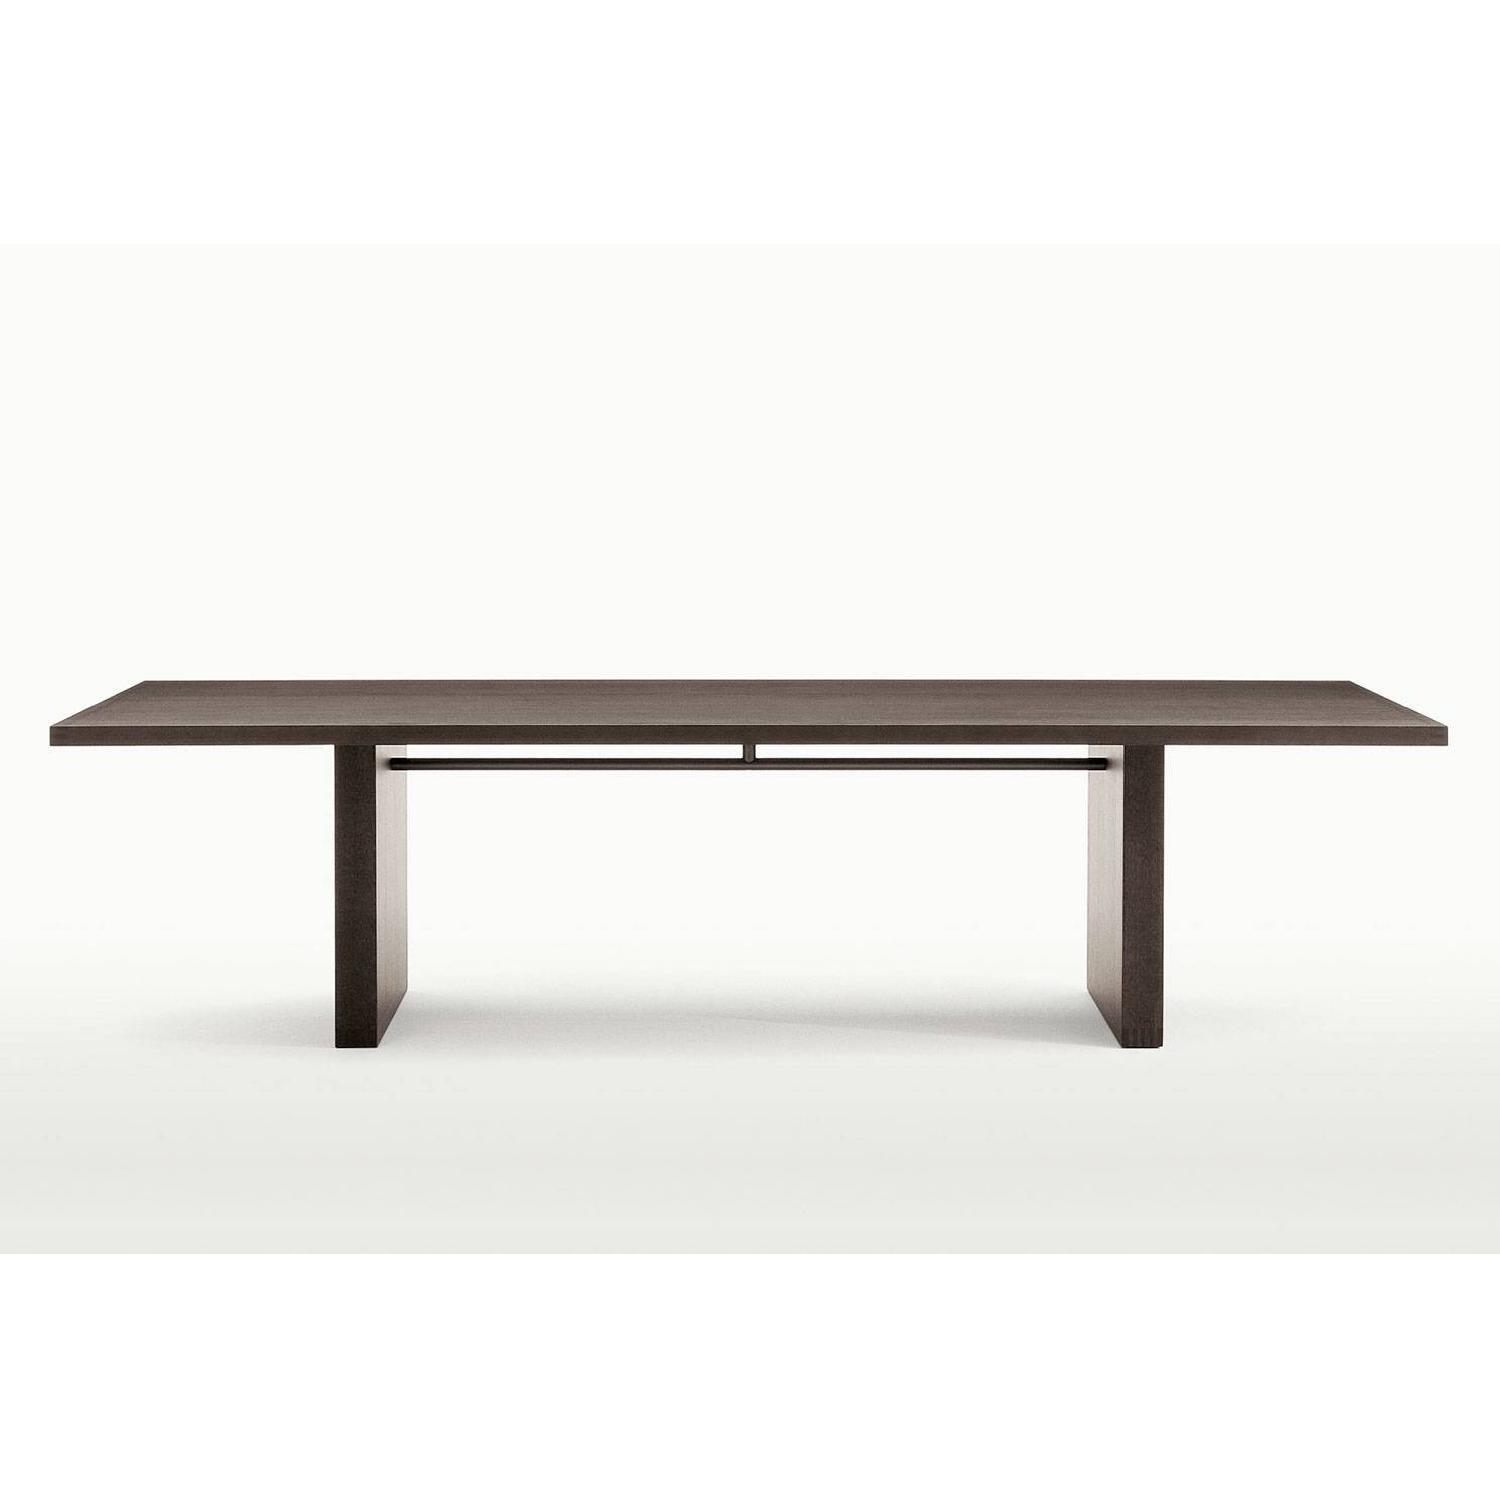 B&B Italia Large Wenge Veneer Dining Table - image-5